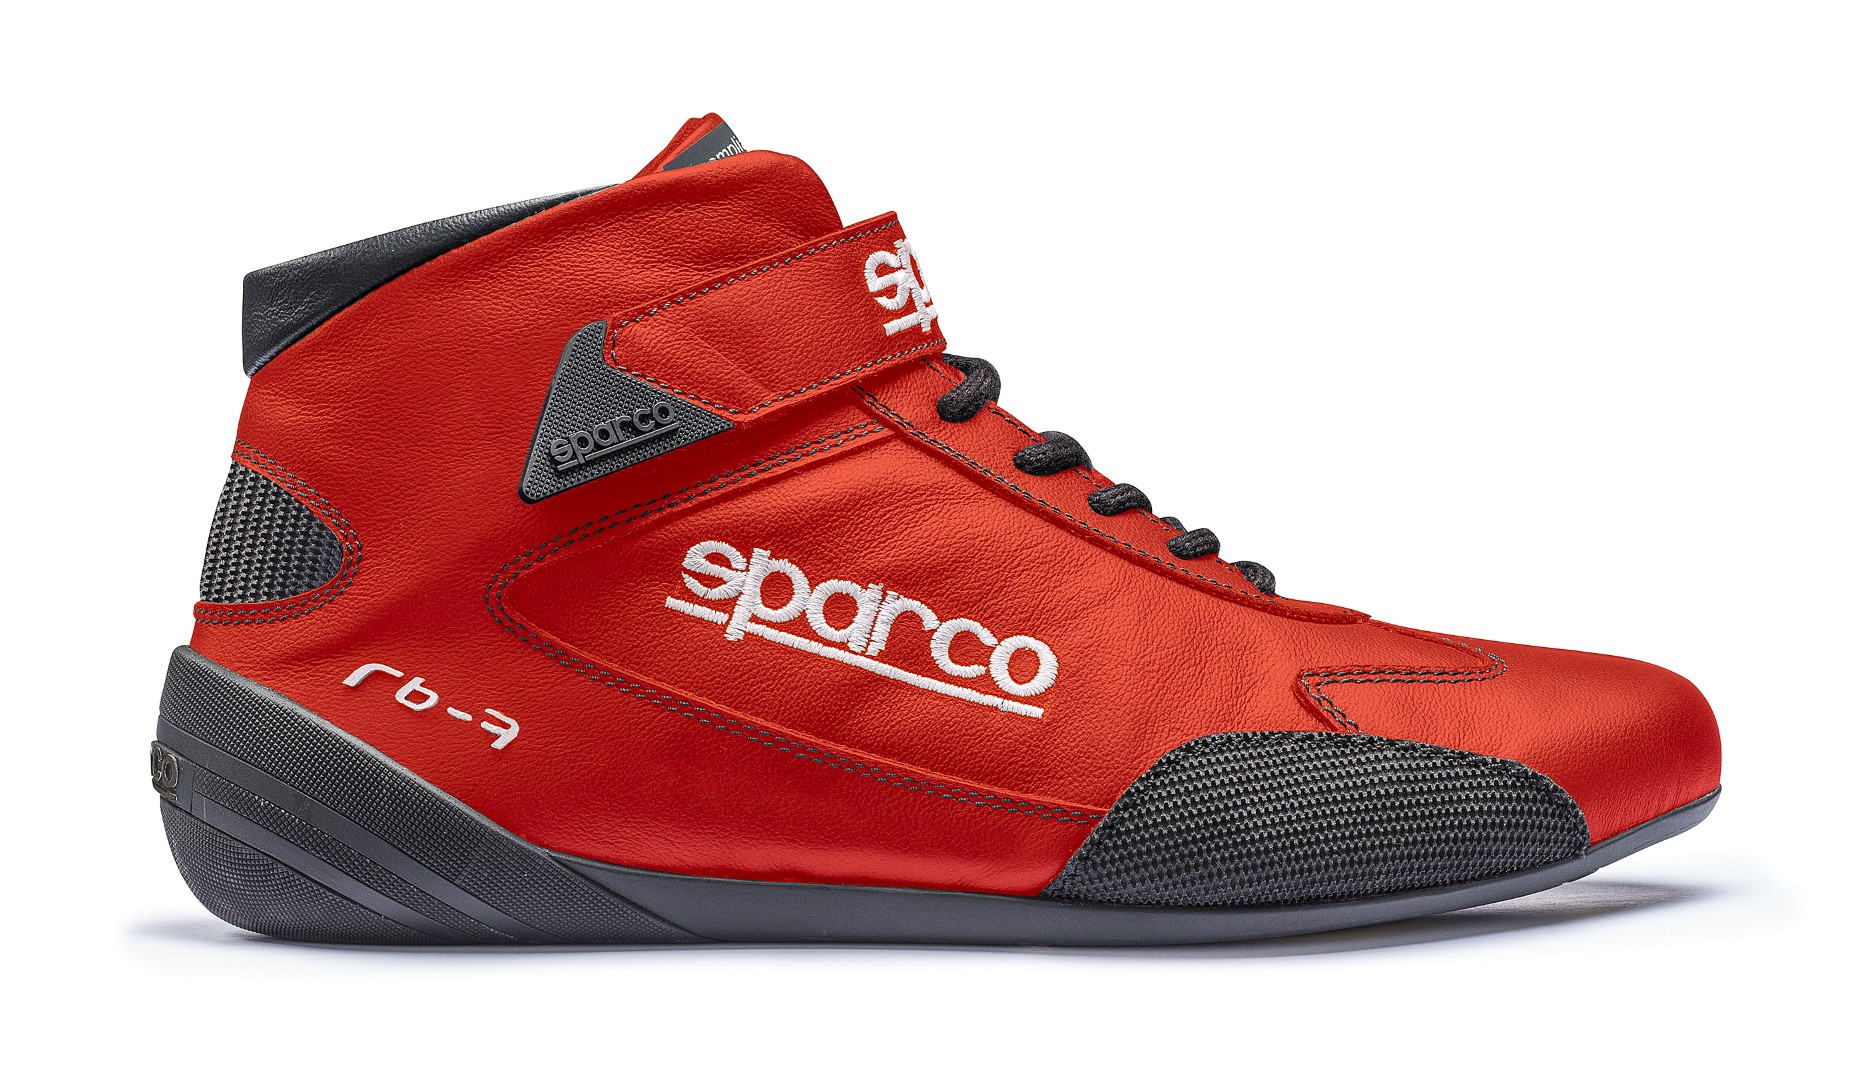 Sparco Red Cross RB-7 Driving Shoes EU 41 | US 7 - 00122441RS